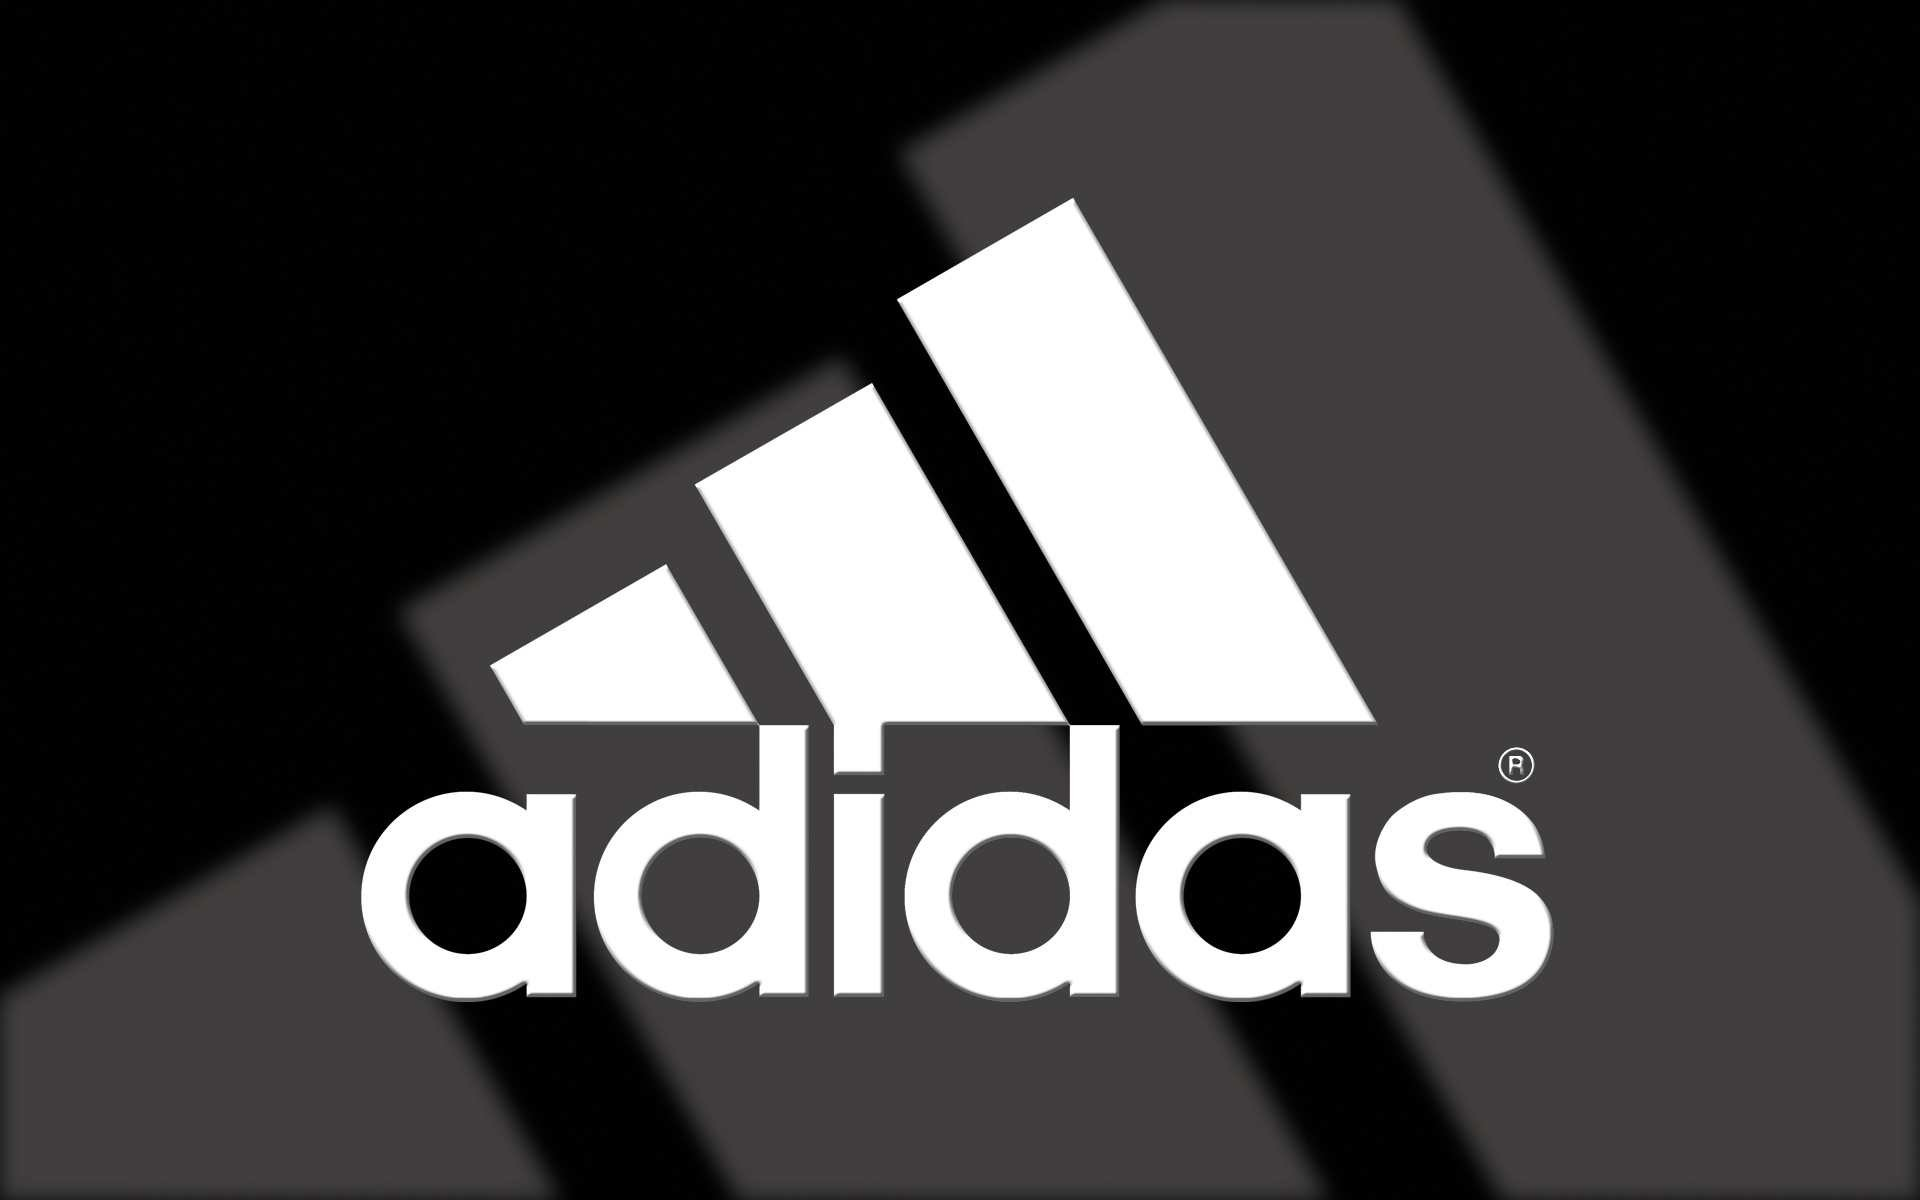 1920x1080 wallpaper cool adidas wallpapers god wallpapers for android wallpaper